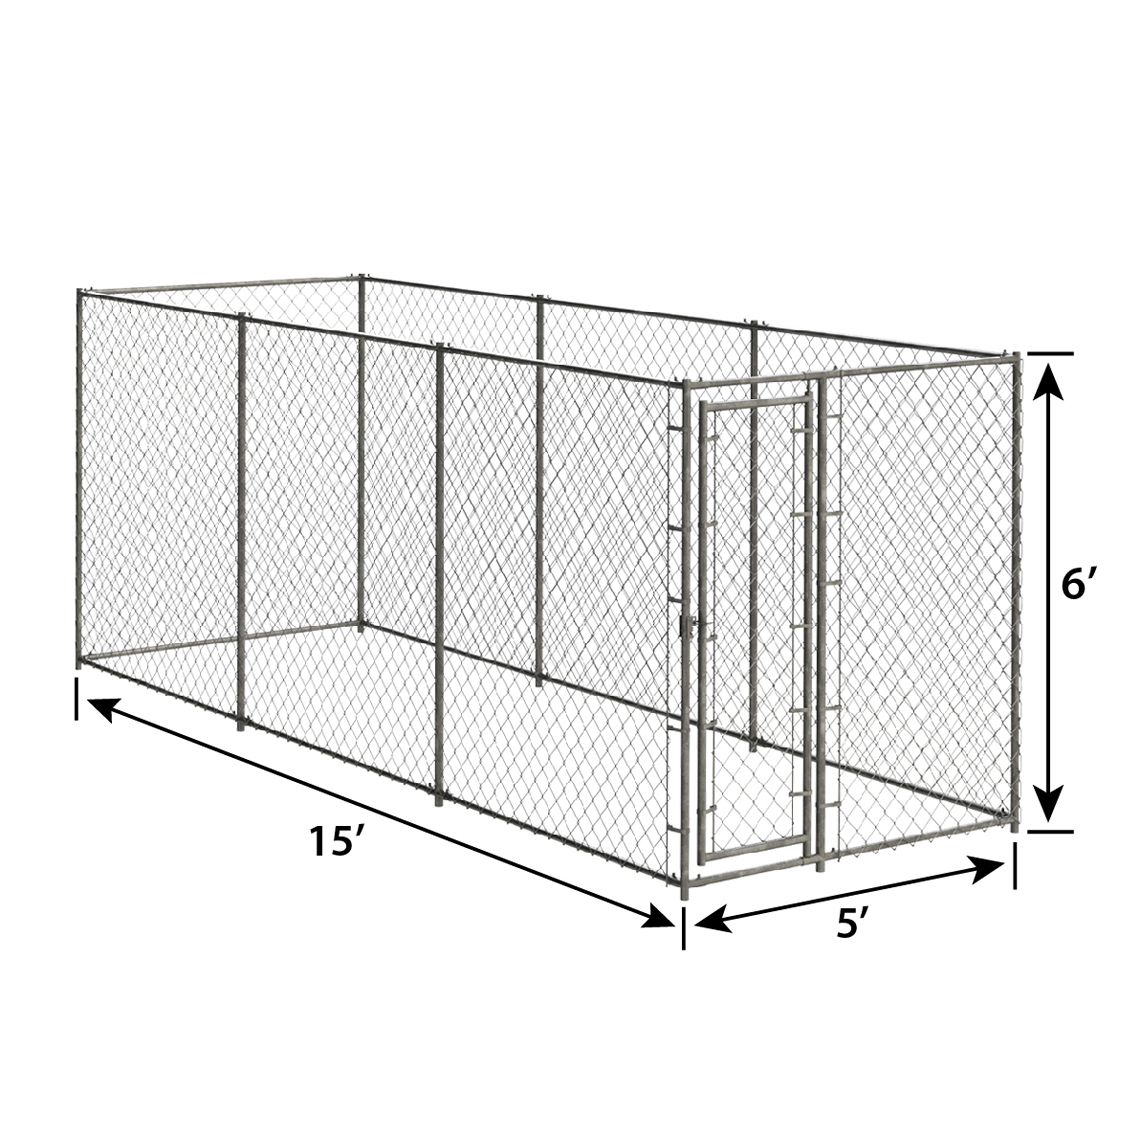 6ft H X 10ft W X 10ft D Chain Link Kennel Kit Pet Kennels Crates Playpens Pet Sentinel Products Pet Kennels Dog Kennel Outdoor Outdoor Dog House